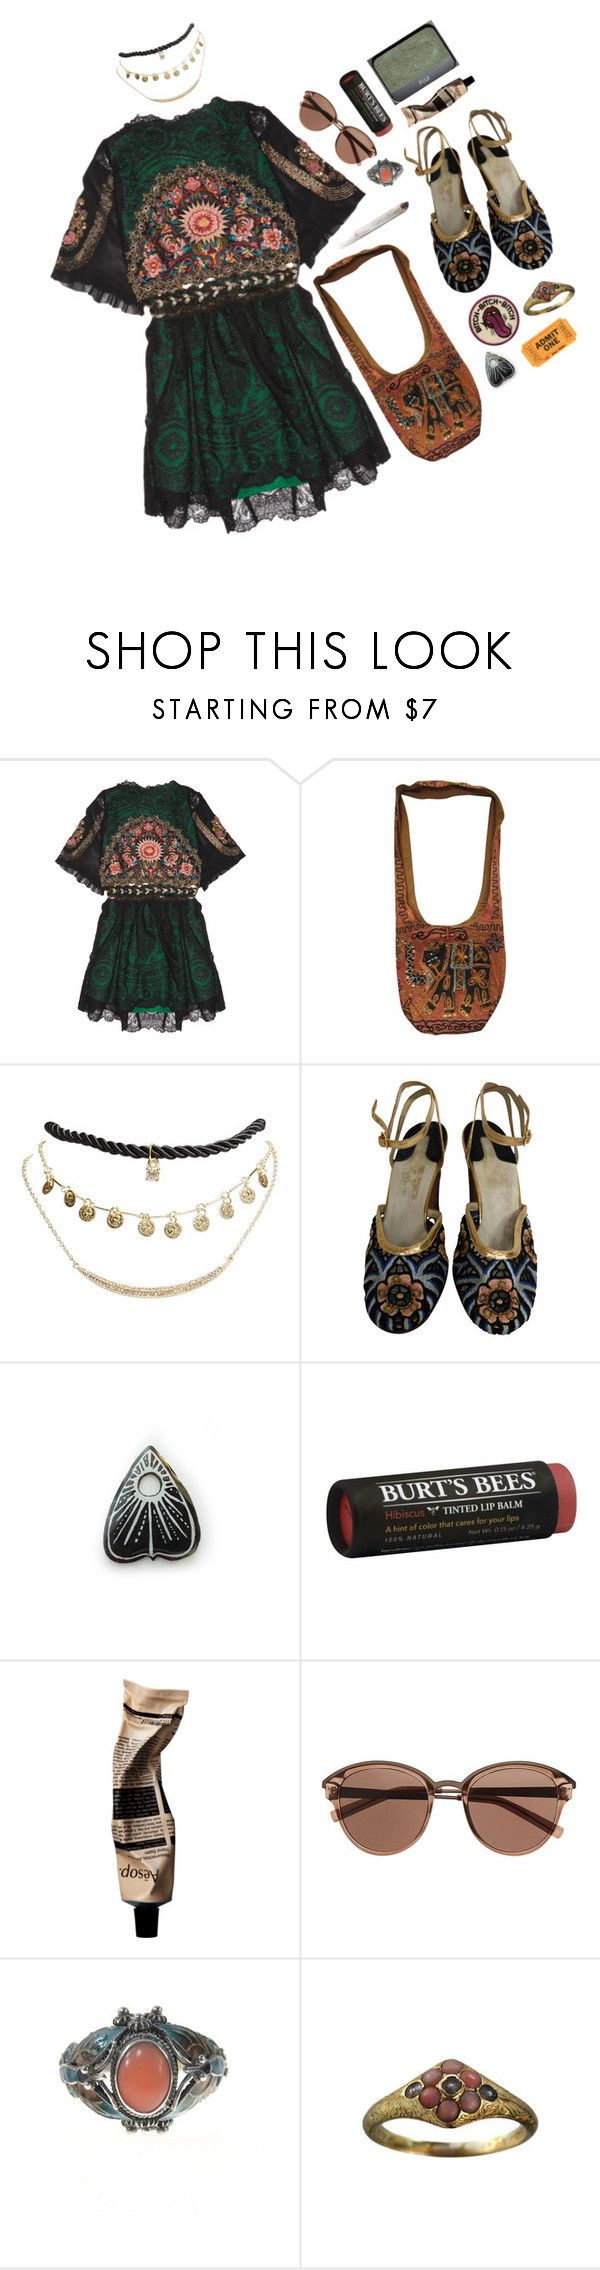 """""""Bohemian Music Festival"""" by izzy-boo-kitty ❤ liked on Polyvore featuring One Vintage, Wet Seal, Salvatore Ferragamo, Burt's Bees, NARS Cosmetics and Witchery"""